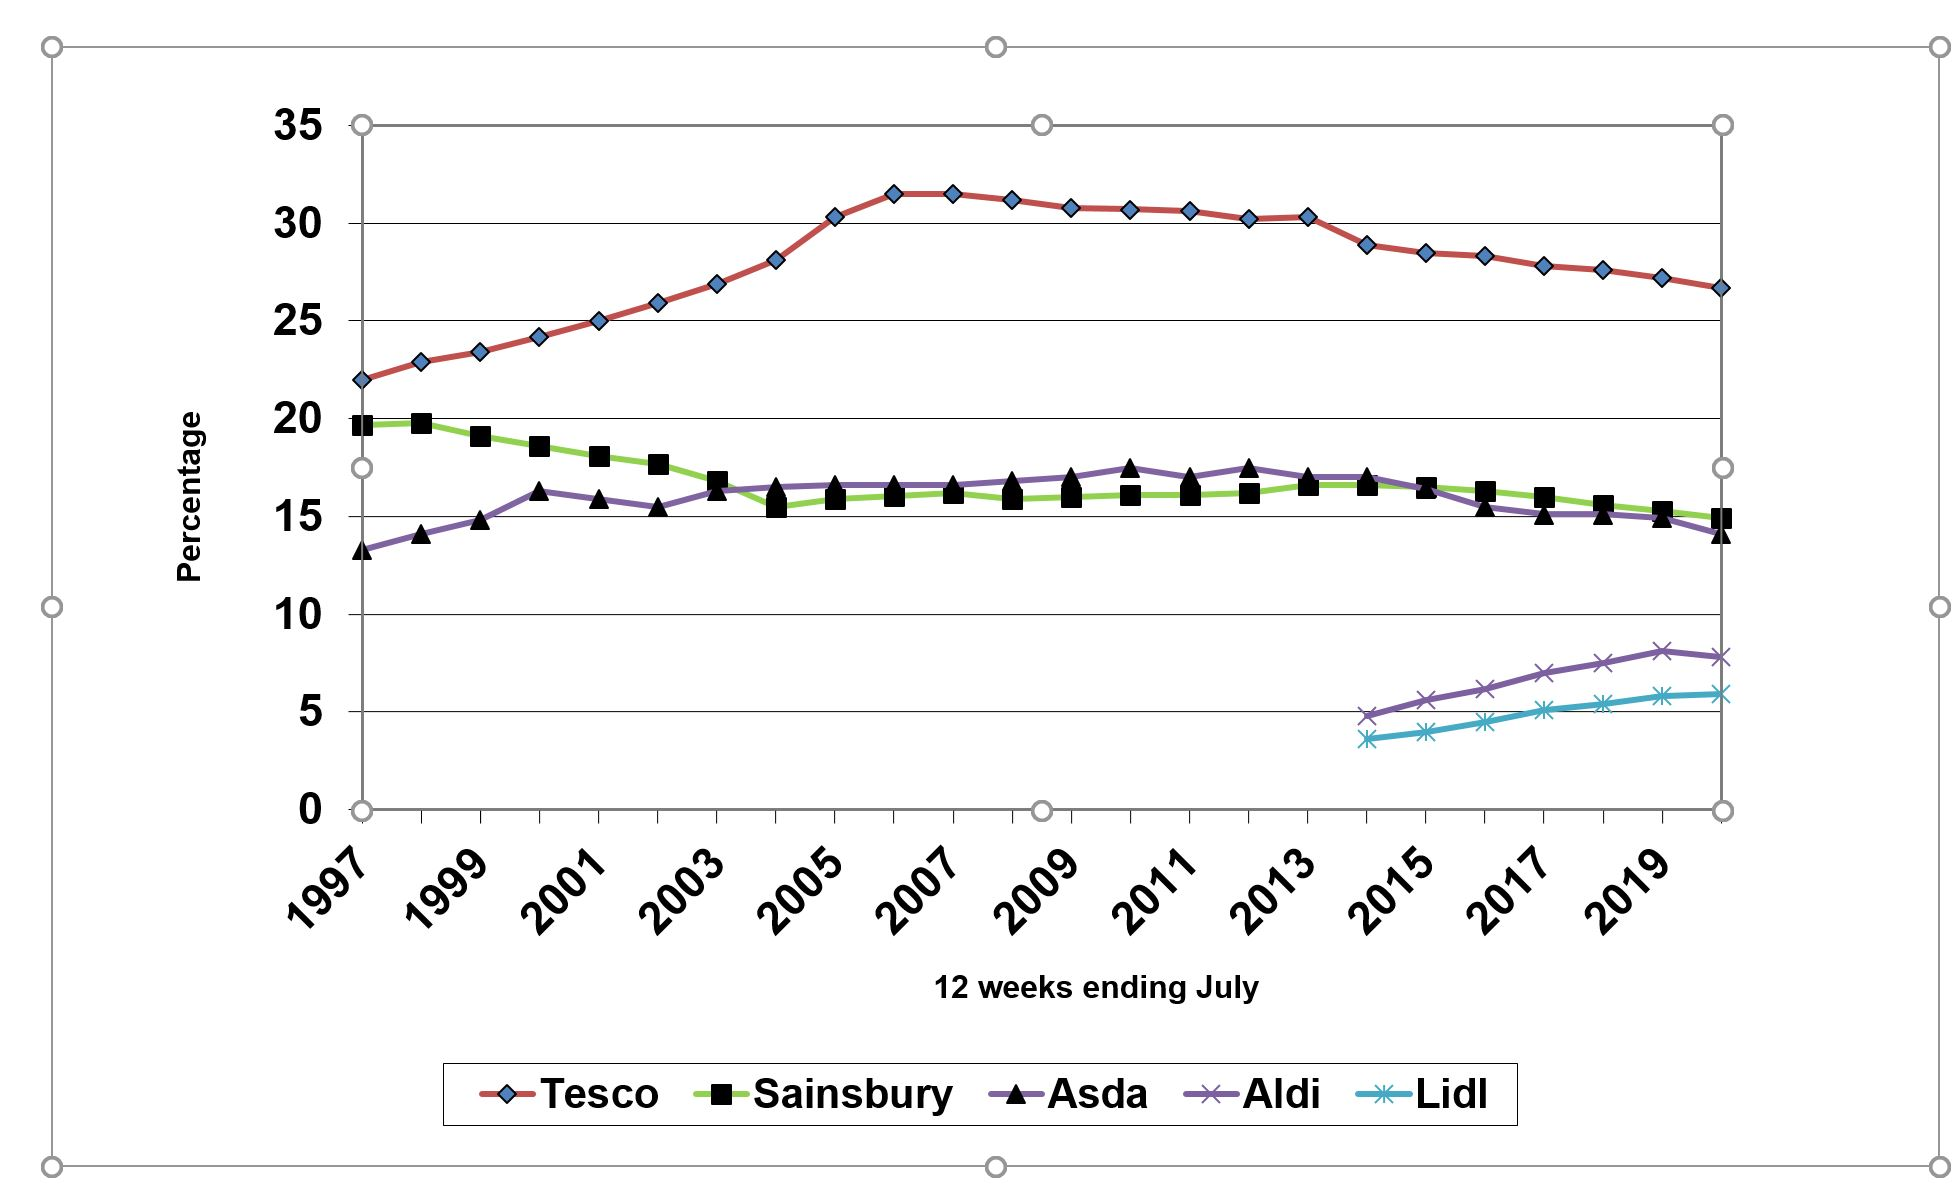 GB Grocery Market Share 2020